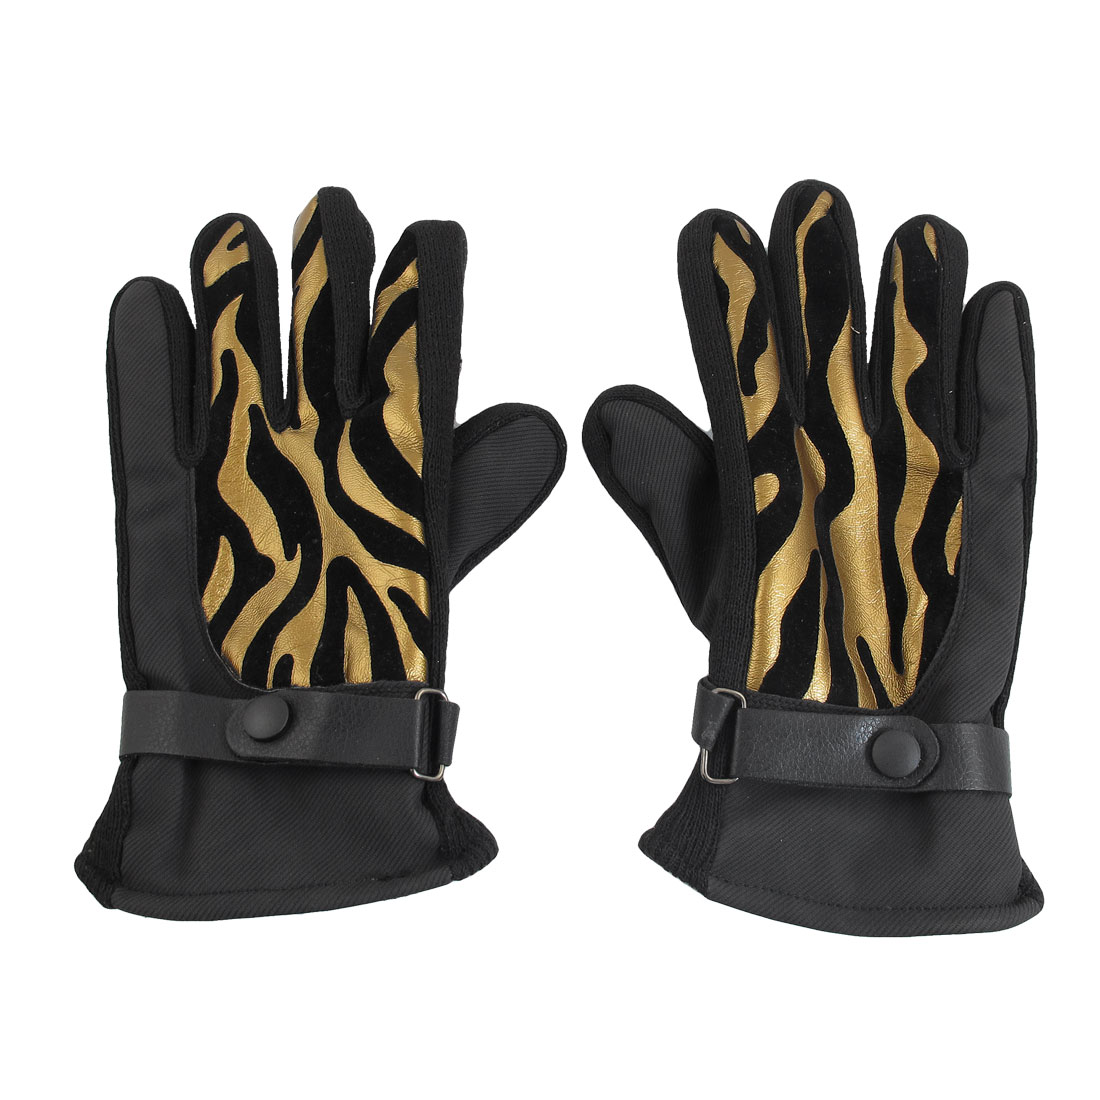 Unique Bargains Unique Bargains Man Winter Nylon Fleece Climbing Golden Tone Black Full Finger Gloves by